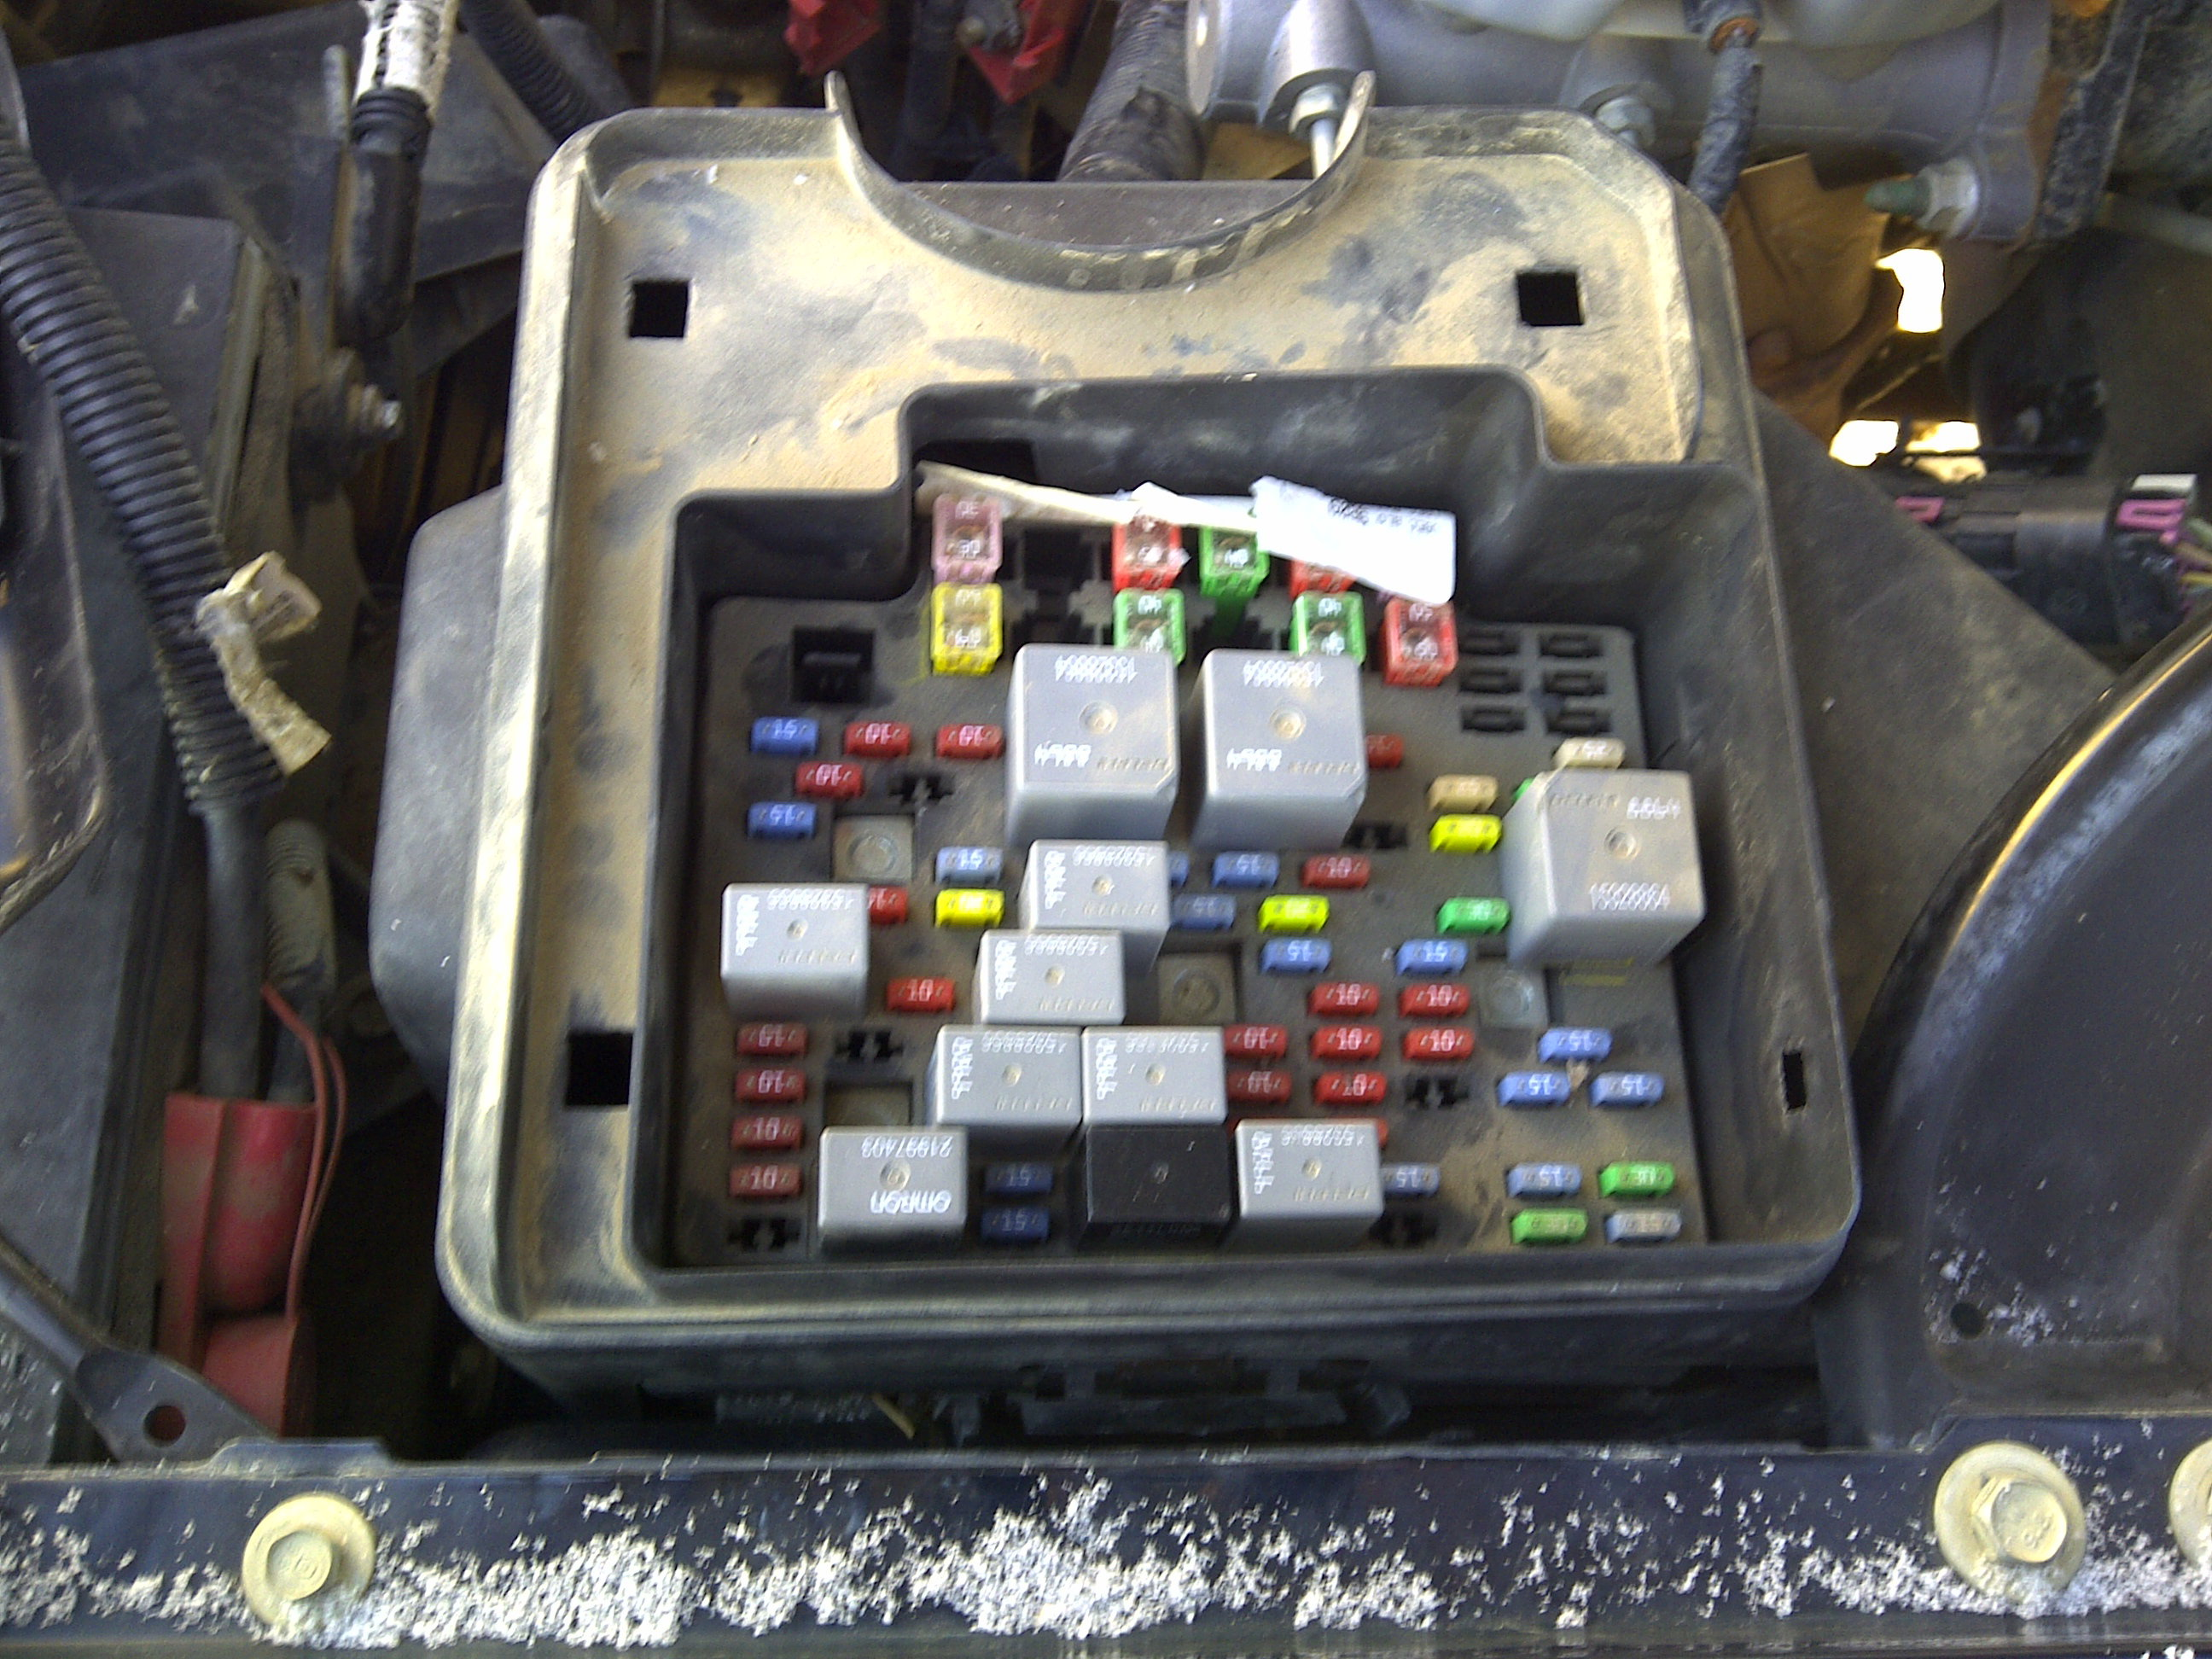 Hqdefault moreover Maxresdefault moreover Cadillac Srx Fuse Box Engine  partment as well Maxresdefault as well Fuse Interior Part. on gmc sierra fuse box diagram